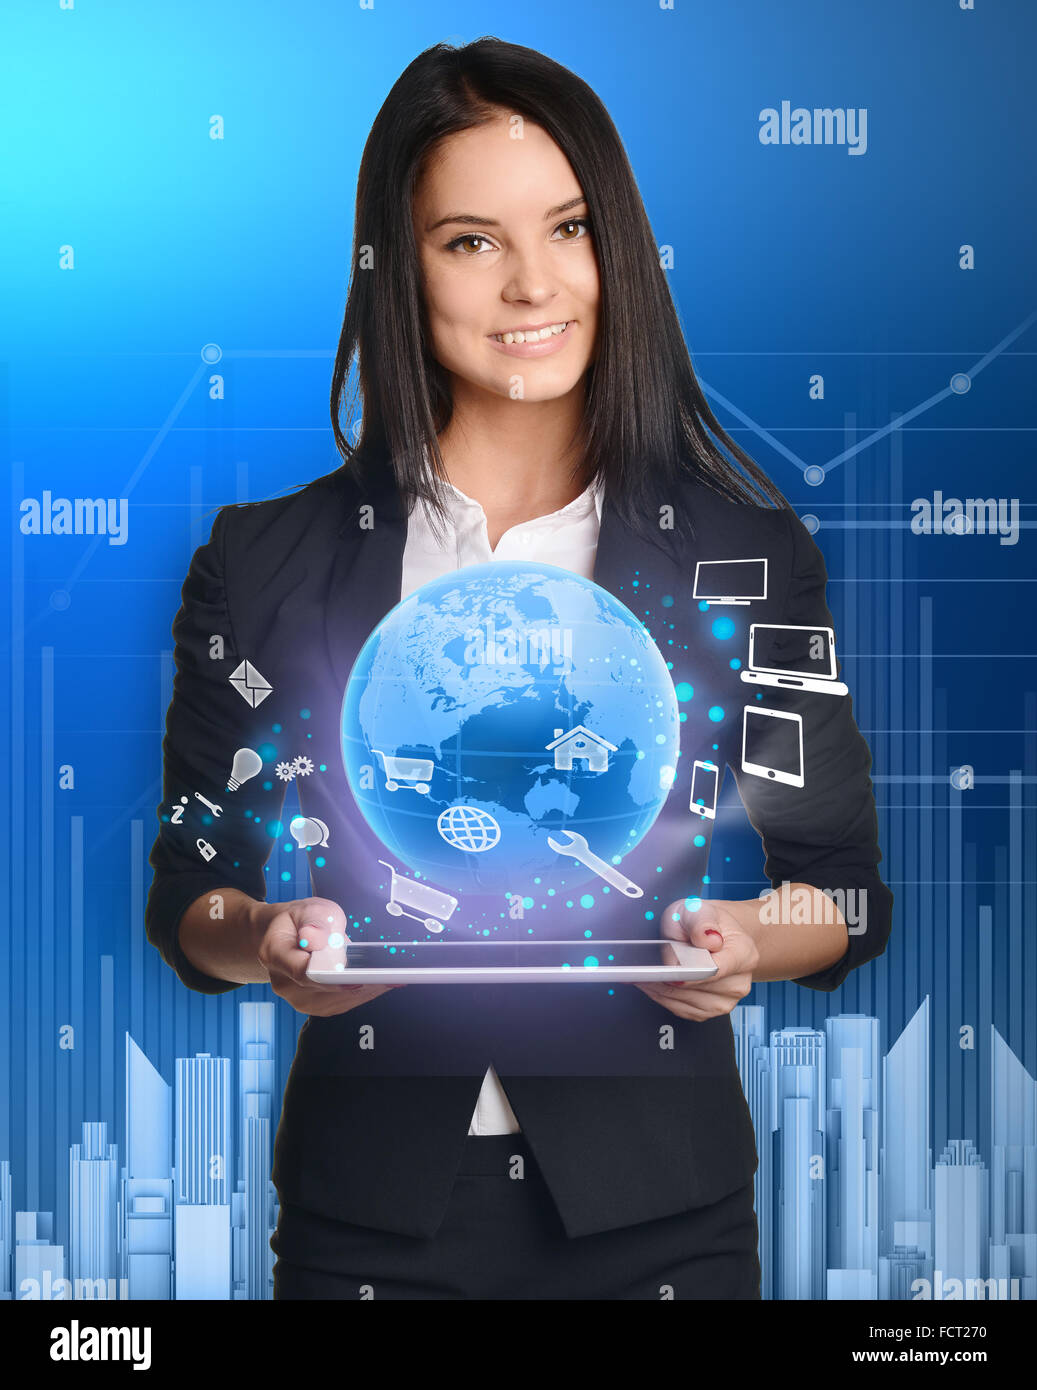 businesswoman with tablet pc against high-tech technology - Stock Image